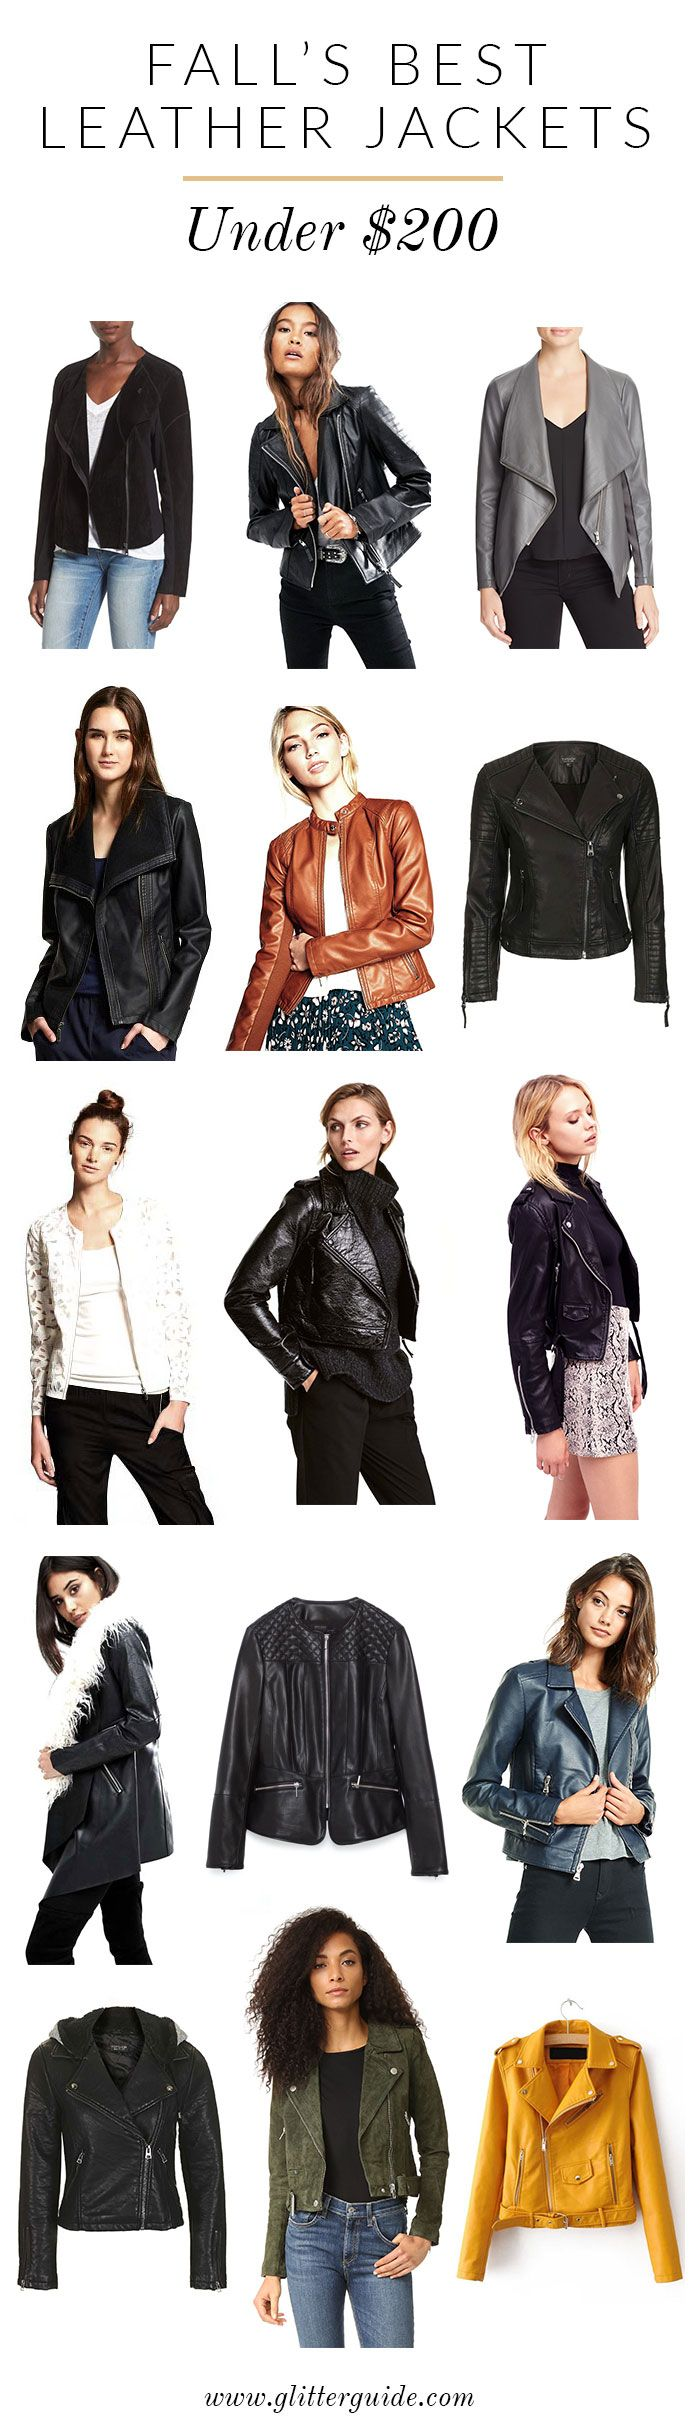 Leather jacket under 100 - Fall S Best Leather Jackets Under 200